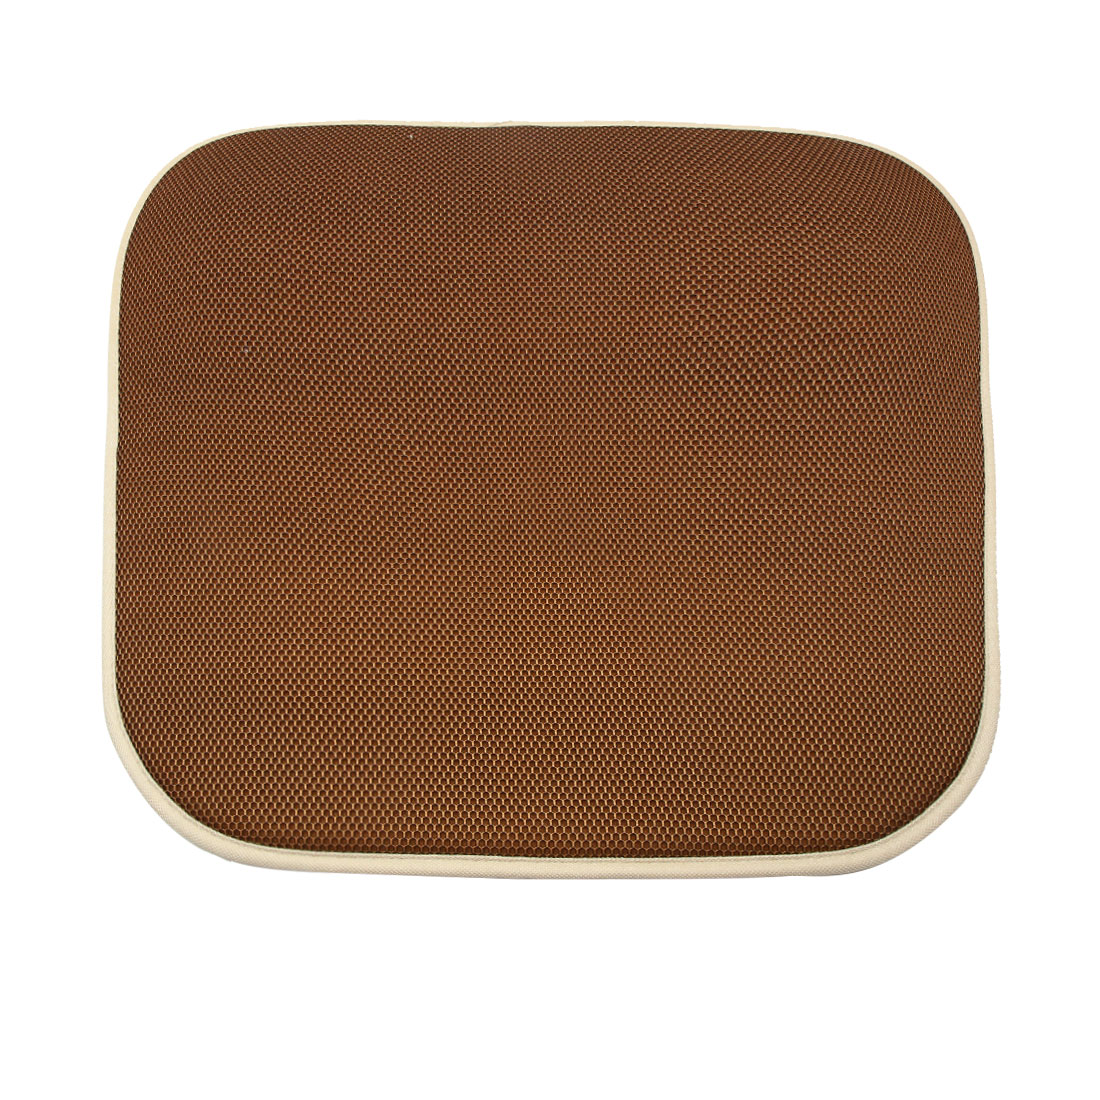 Universal Coffee Color Square Shaped Breathable Mesh Design Car Seat Cushion Mat - image 3 of 3